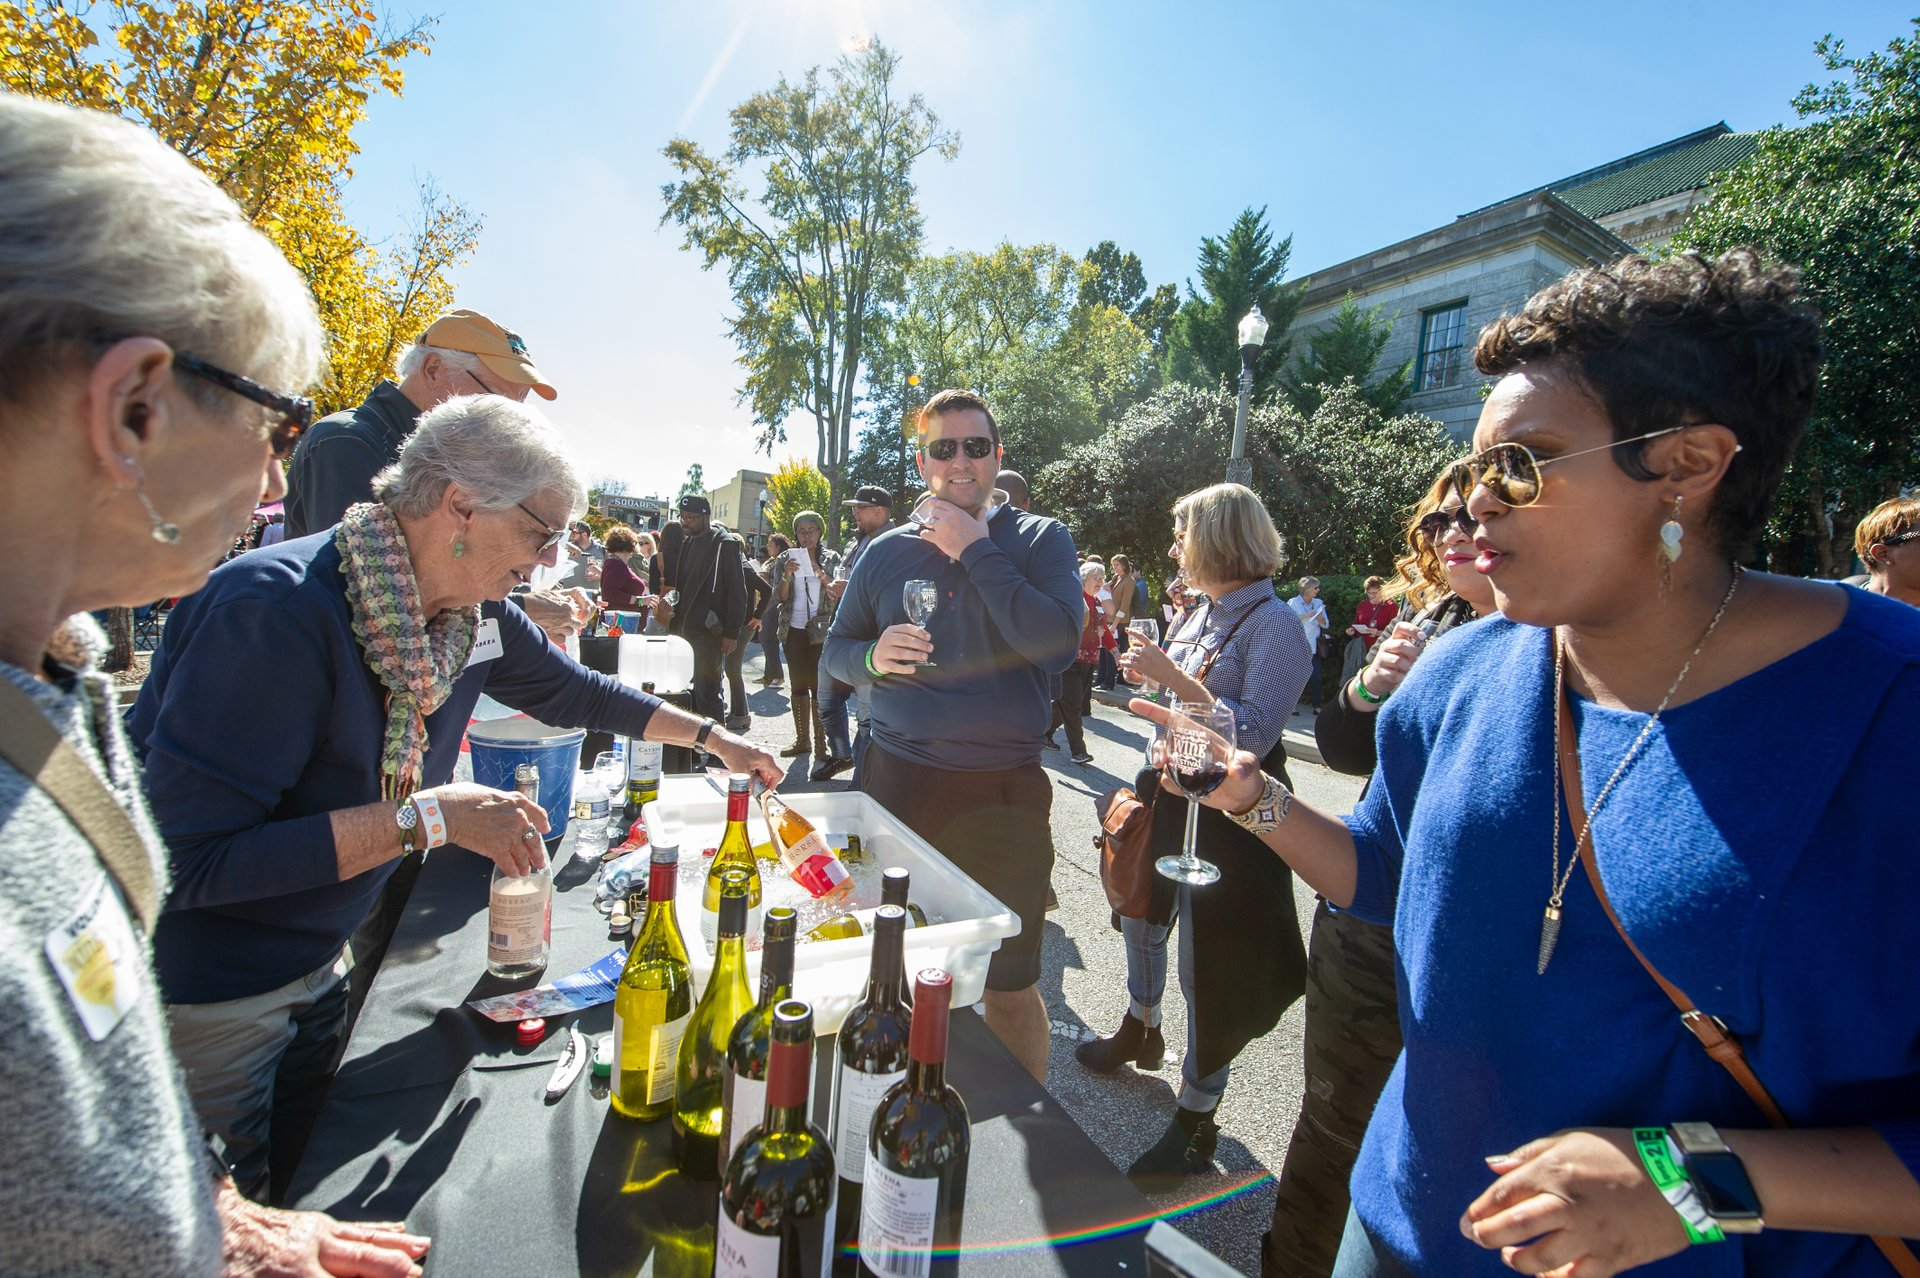 Best time for Decatur Wine Festival in Atlanta 2020